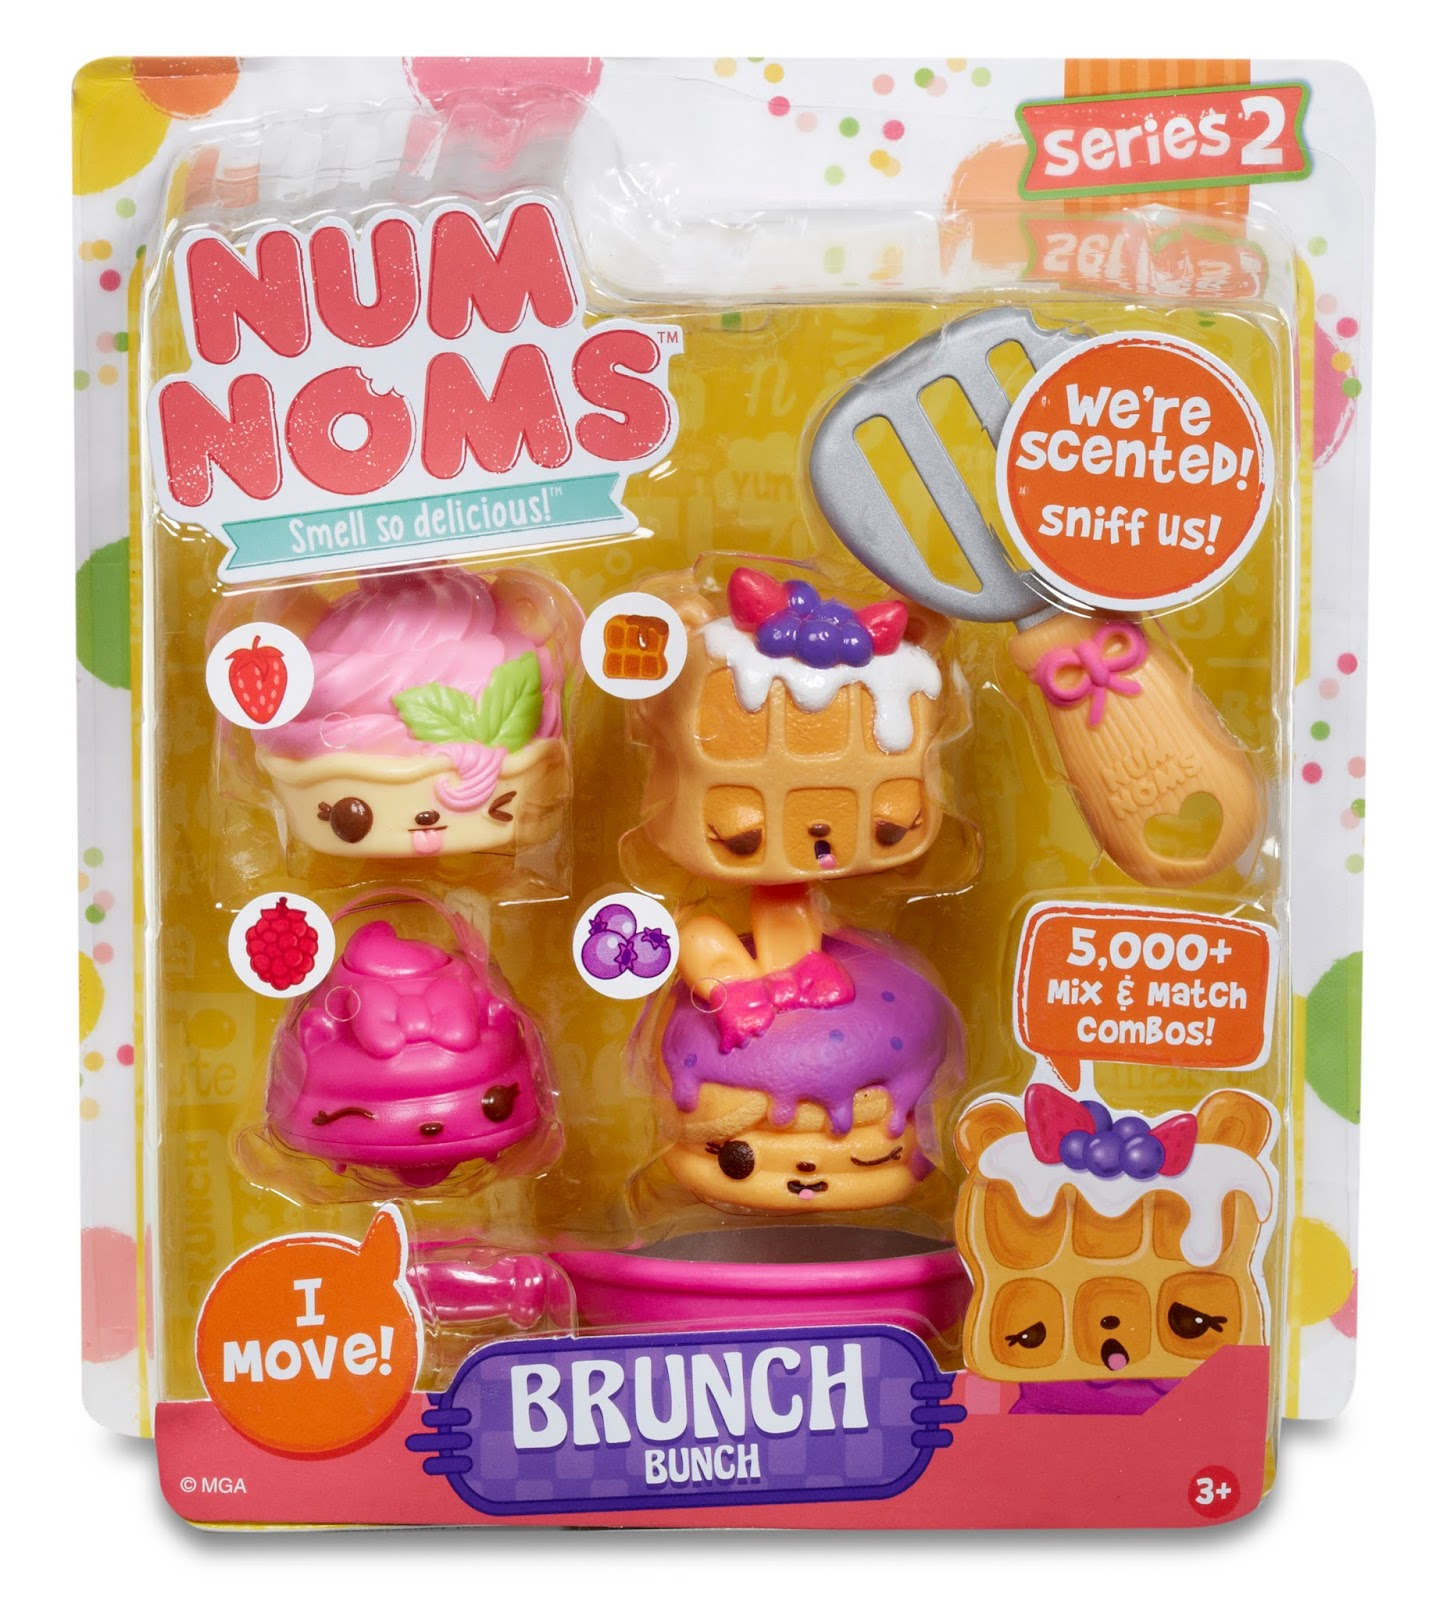 chic geek diary num noms series 2 competition. Black Bedroom Furniture Sets. Home Design Ideas